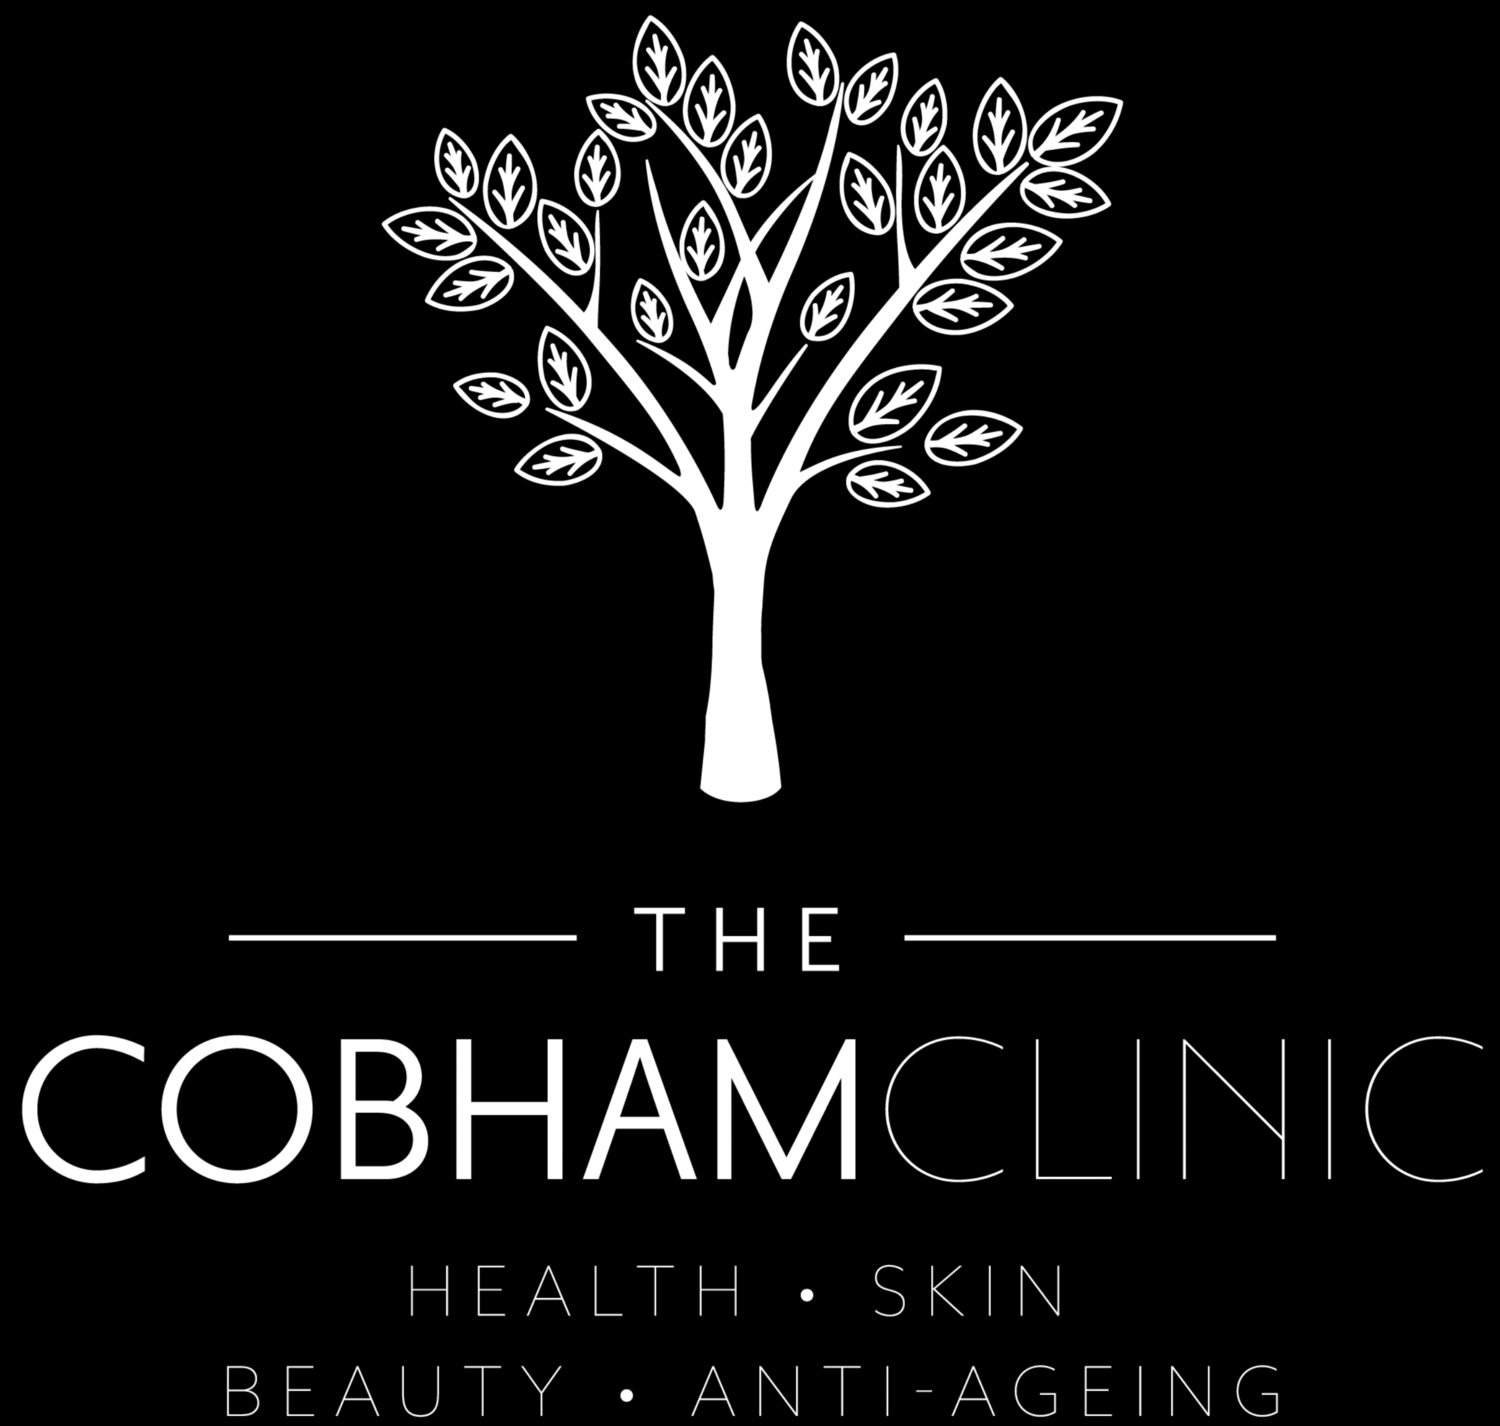 The Cobham Clinic Health & Beauty